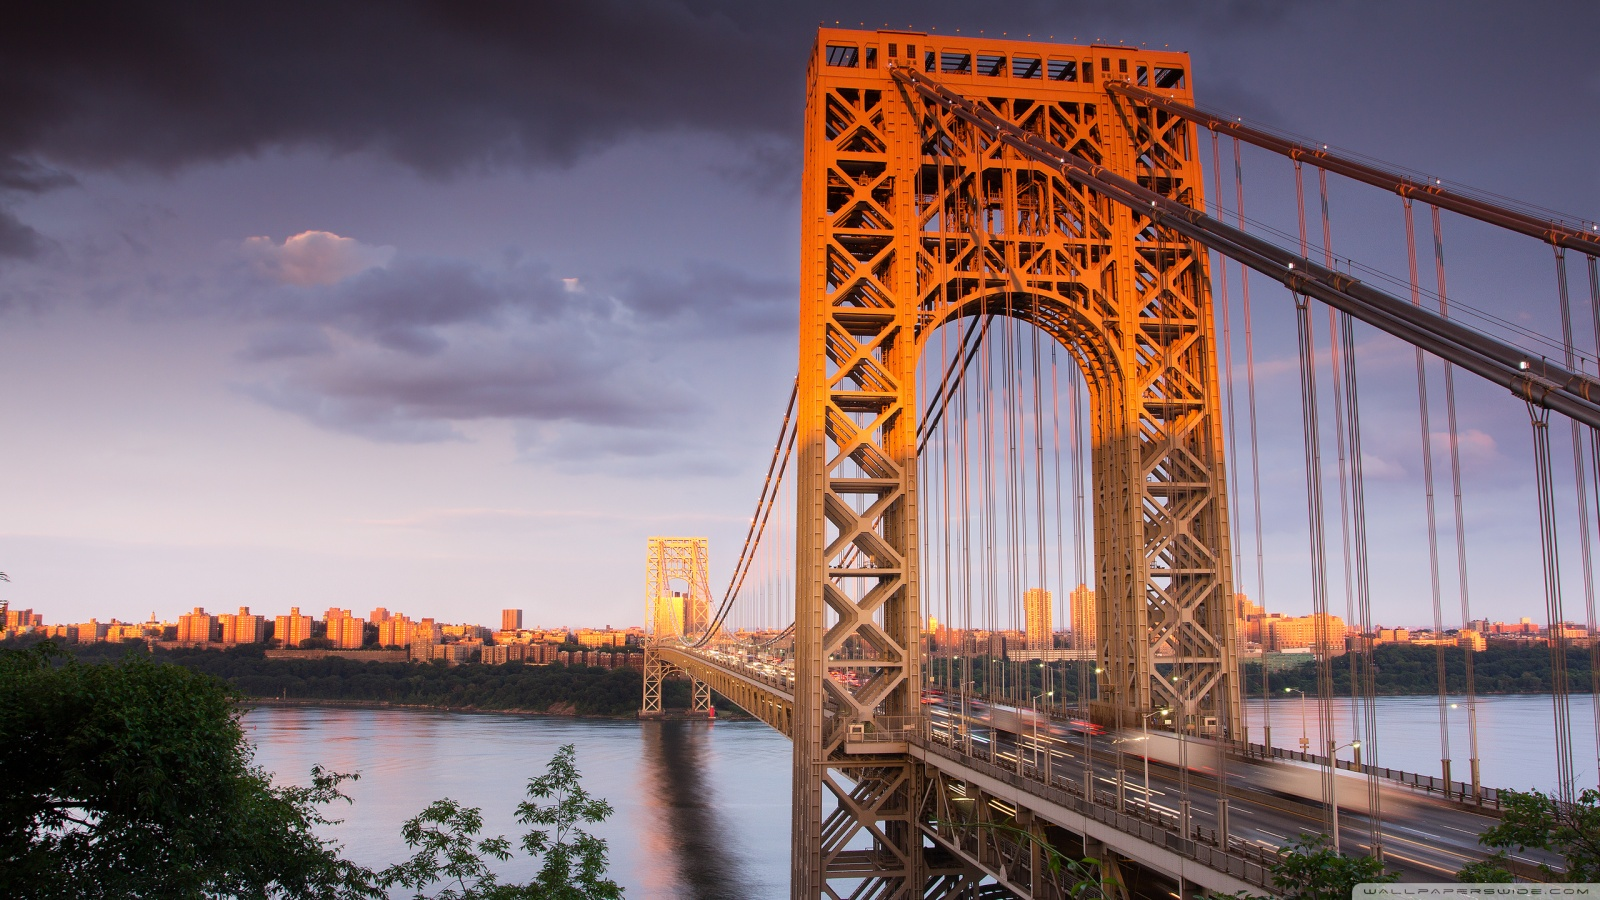 George Washington Bridge Wallpaper 49505